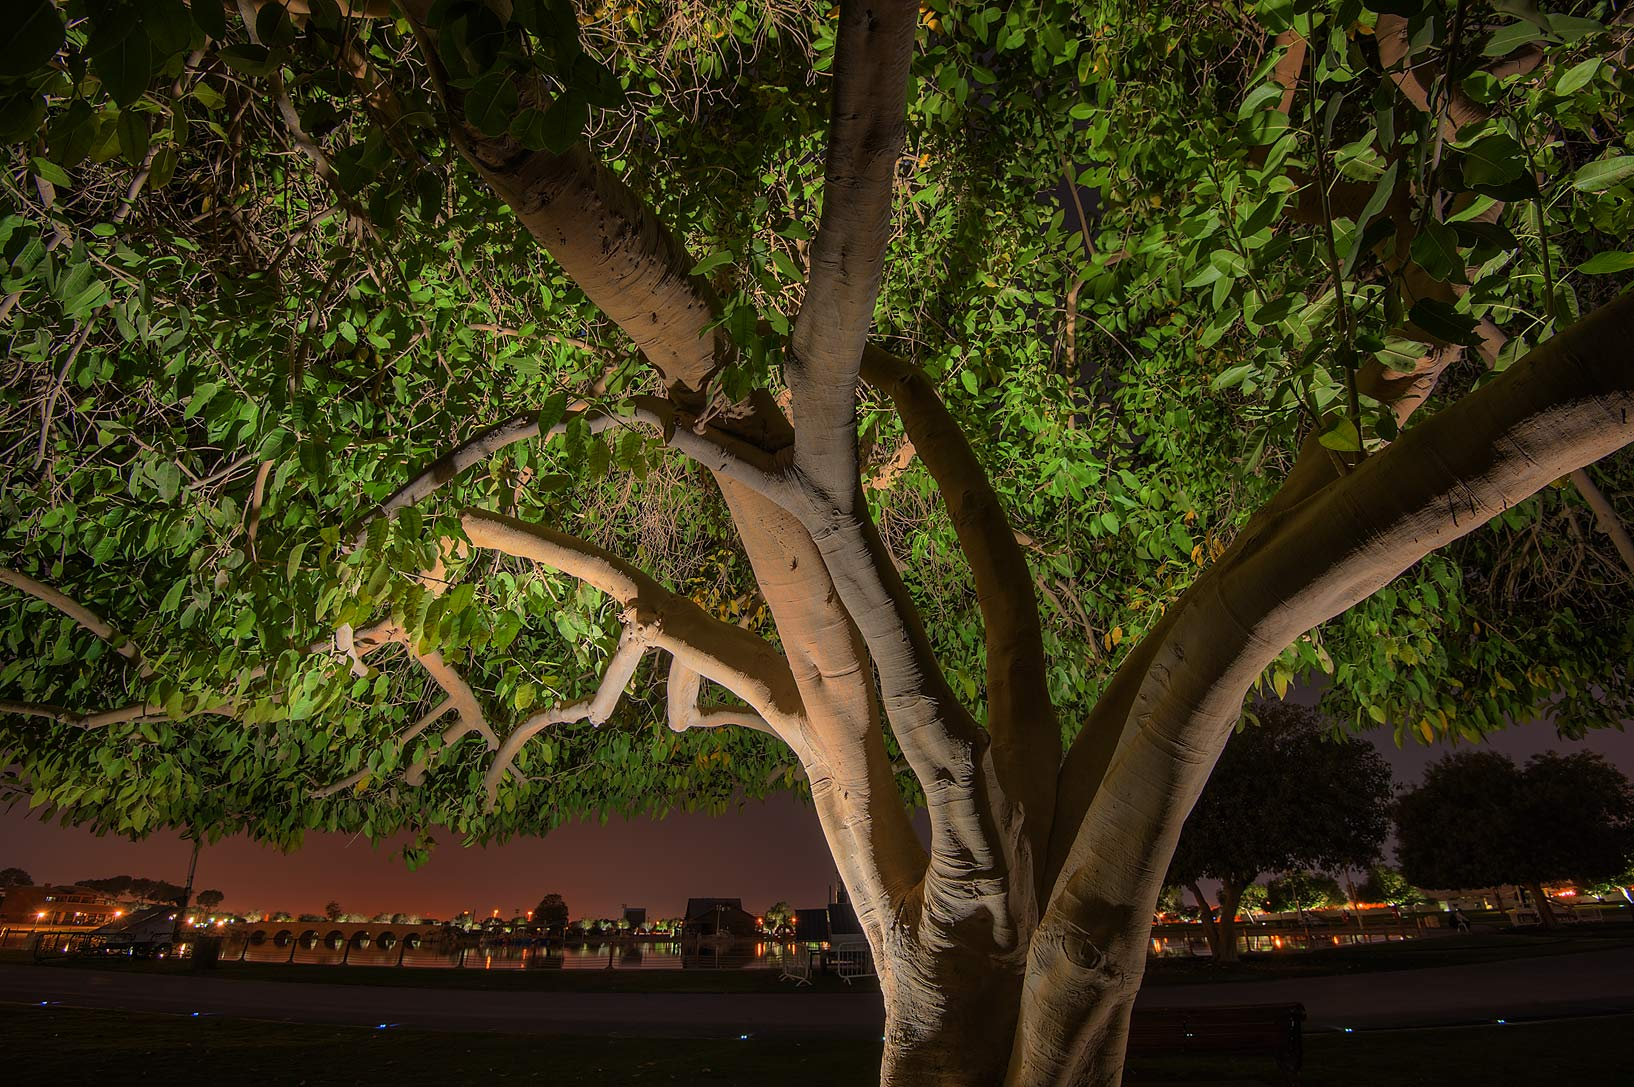 Aspire park-Irkaya Farms, Qatar  - Ficus tree in Aspire Park. Doha, Qatar